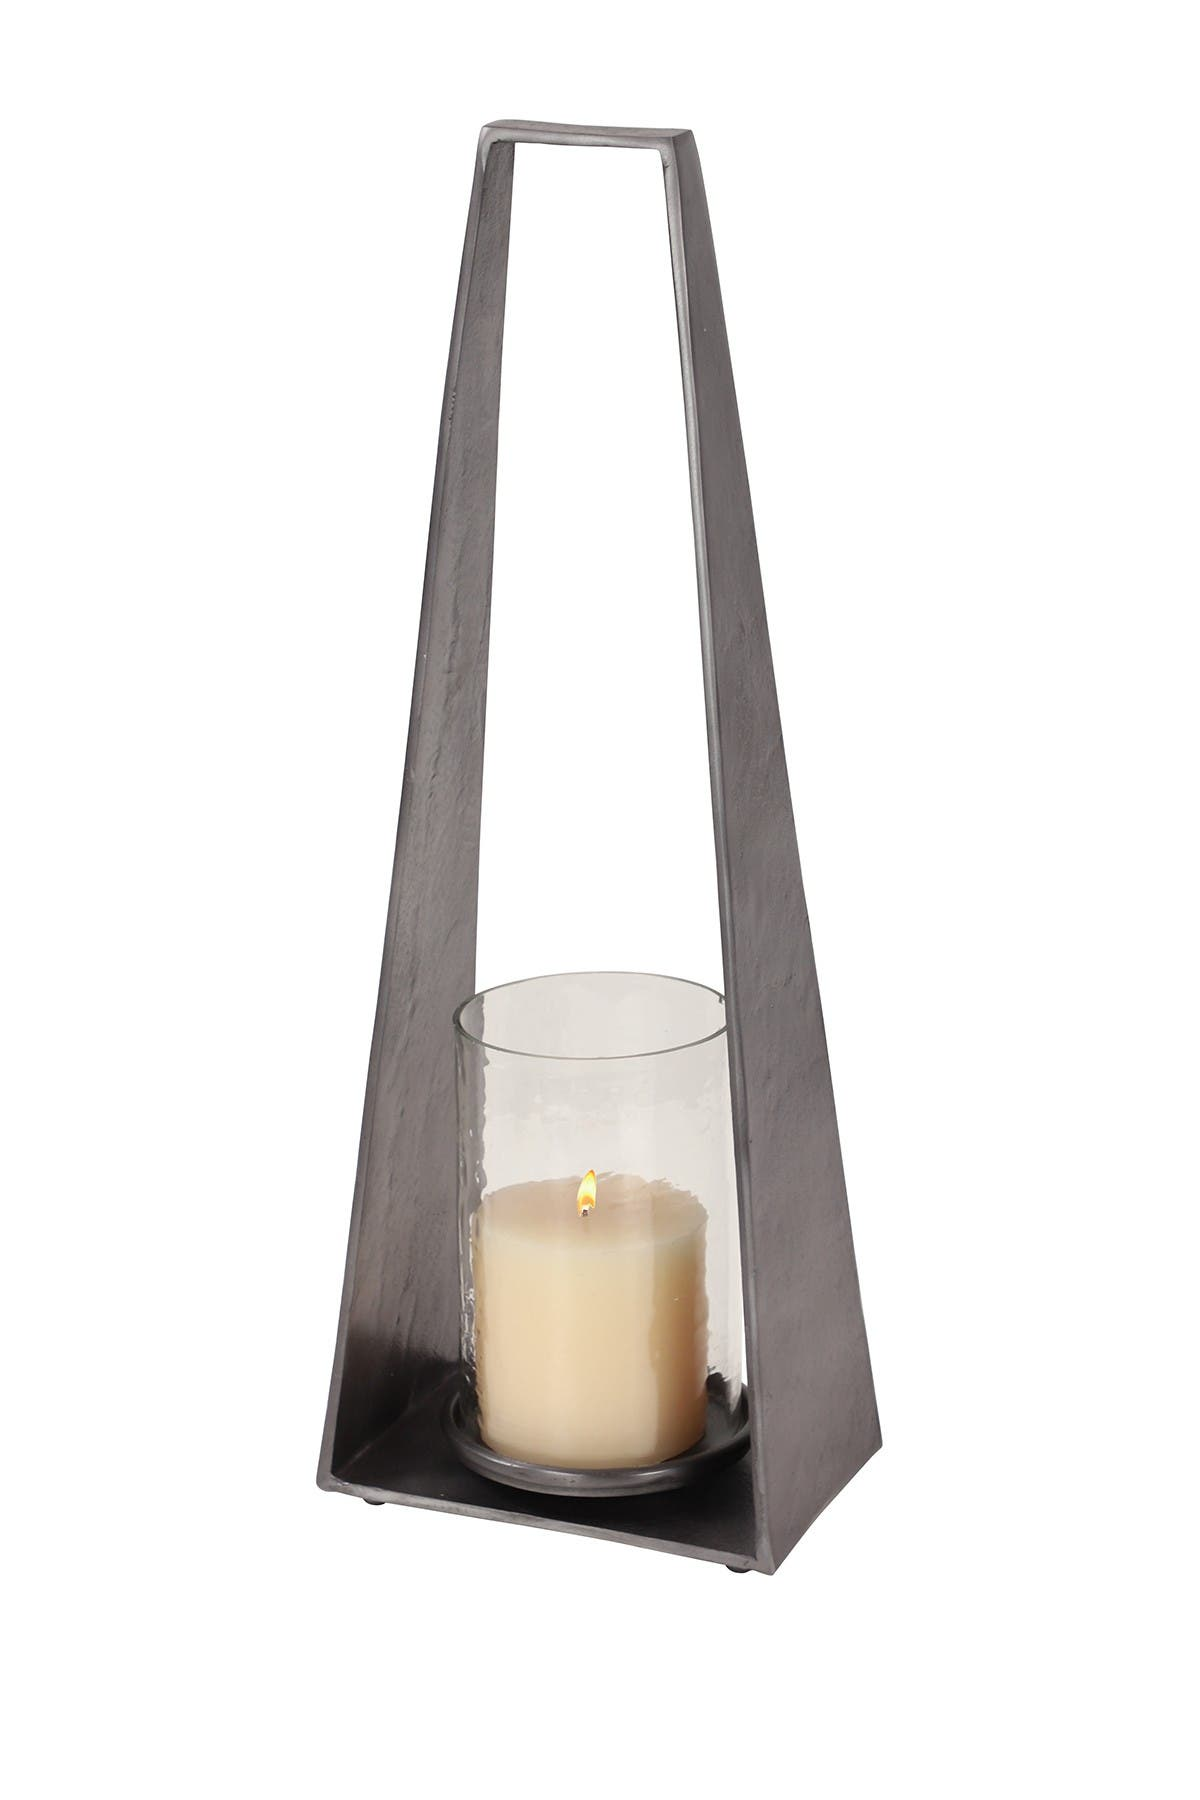 """Image of Willow Row Large Modern Triangular Silver Metal Candle Holder with Hurricane Glass - 8.5""""x 23.5"""